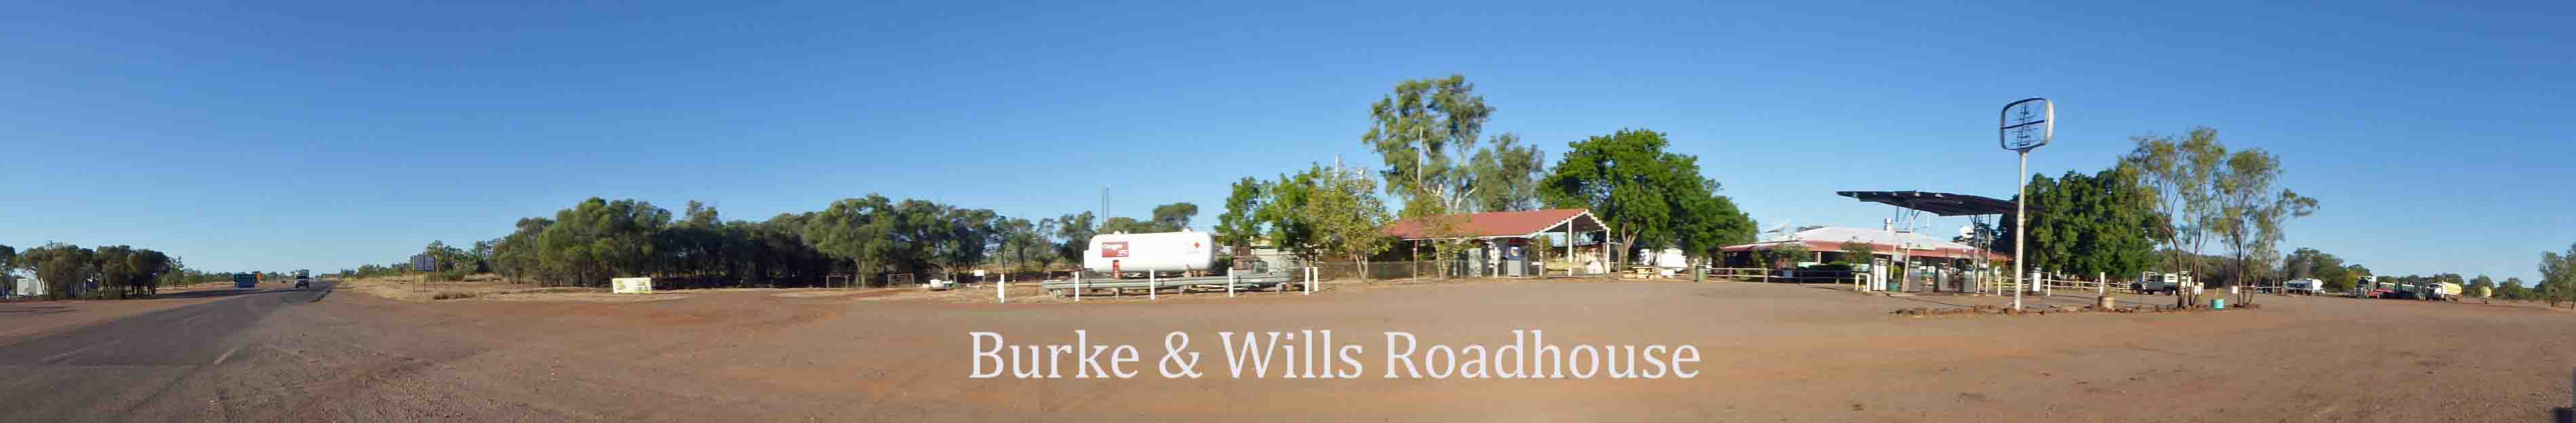 Burke & Wills Roadhouse pan 2text